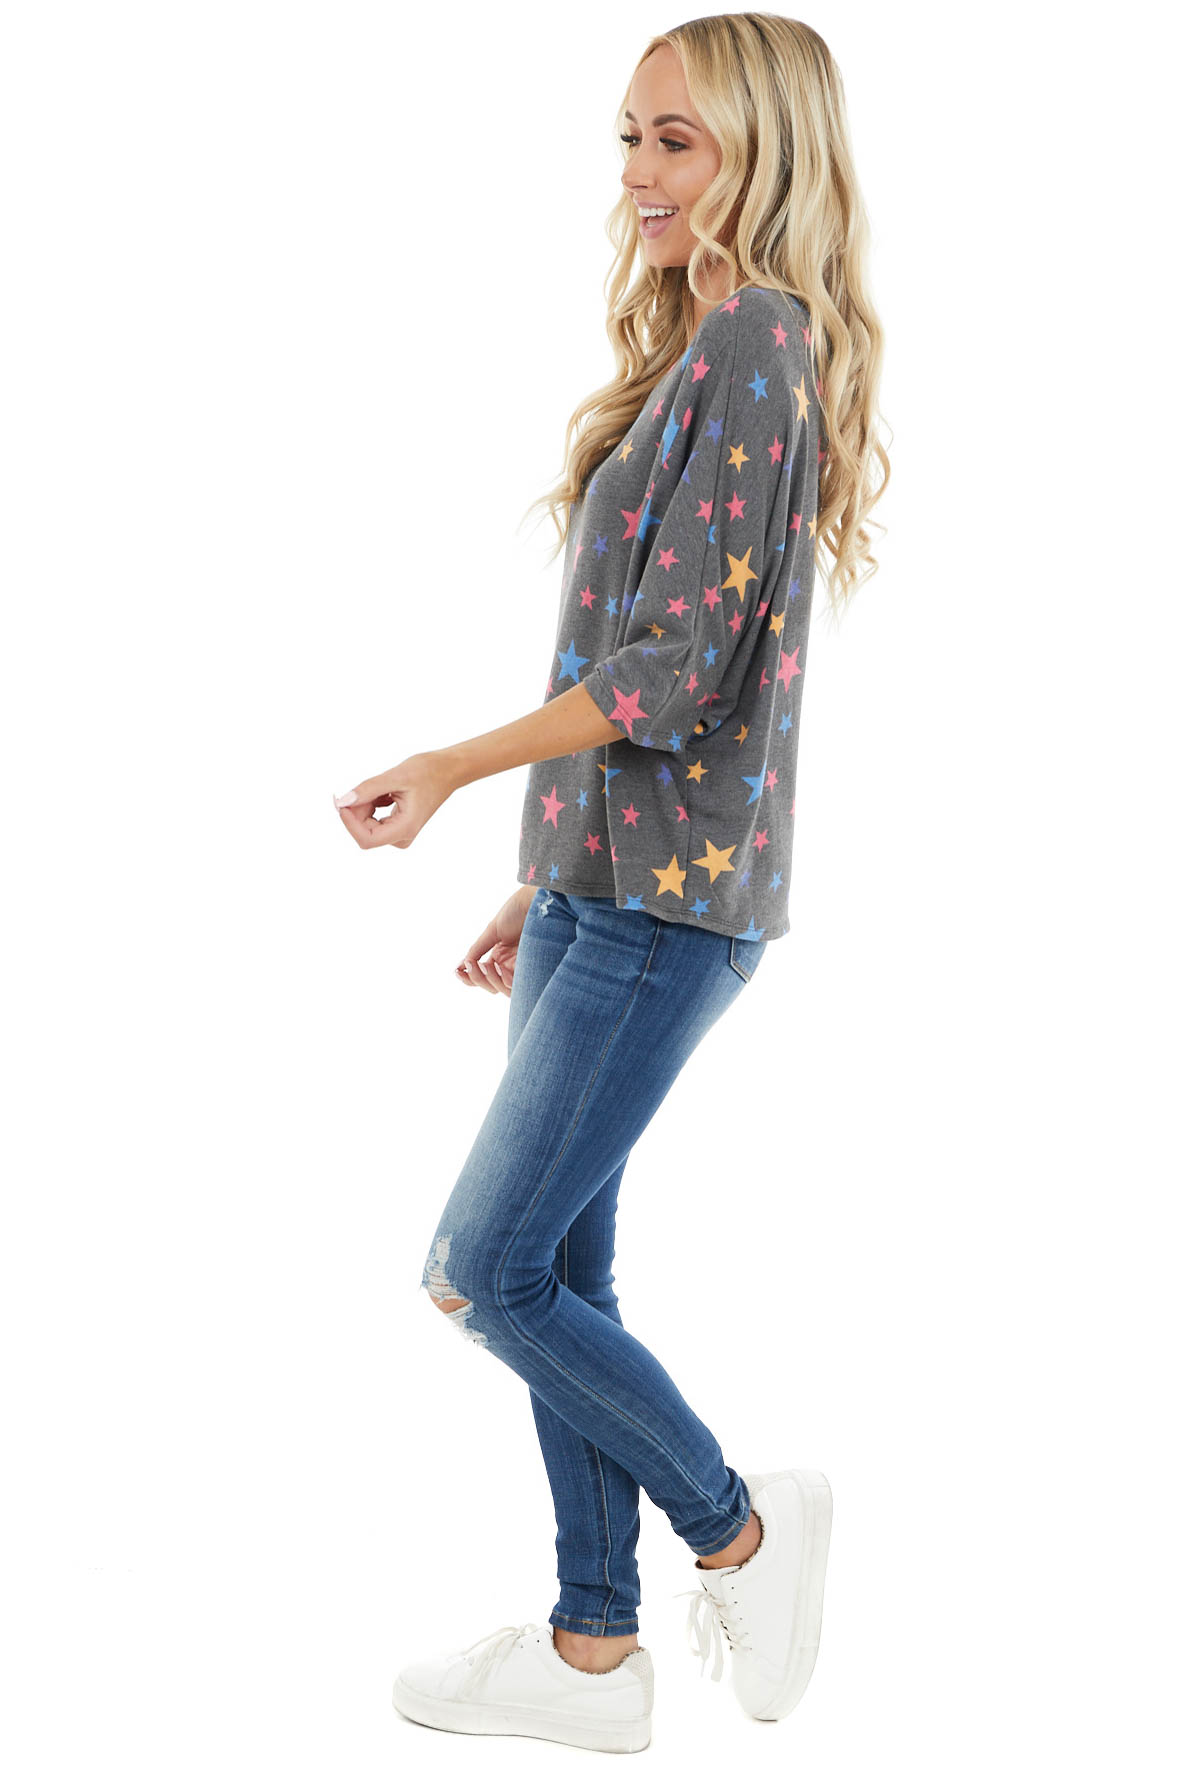 Charcoal Dolman 3/4 Sleeve Top with Star Print Detail